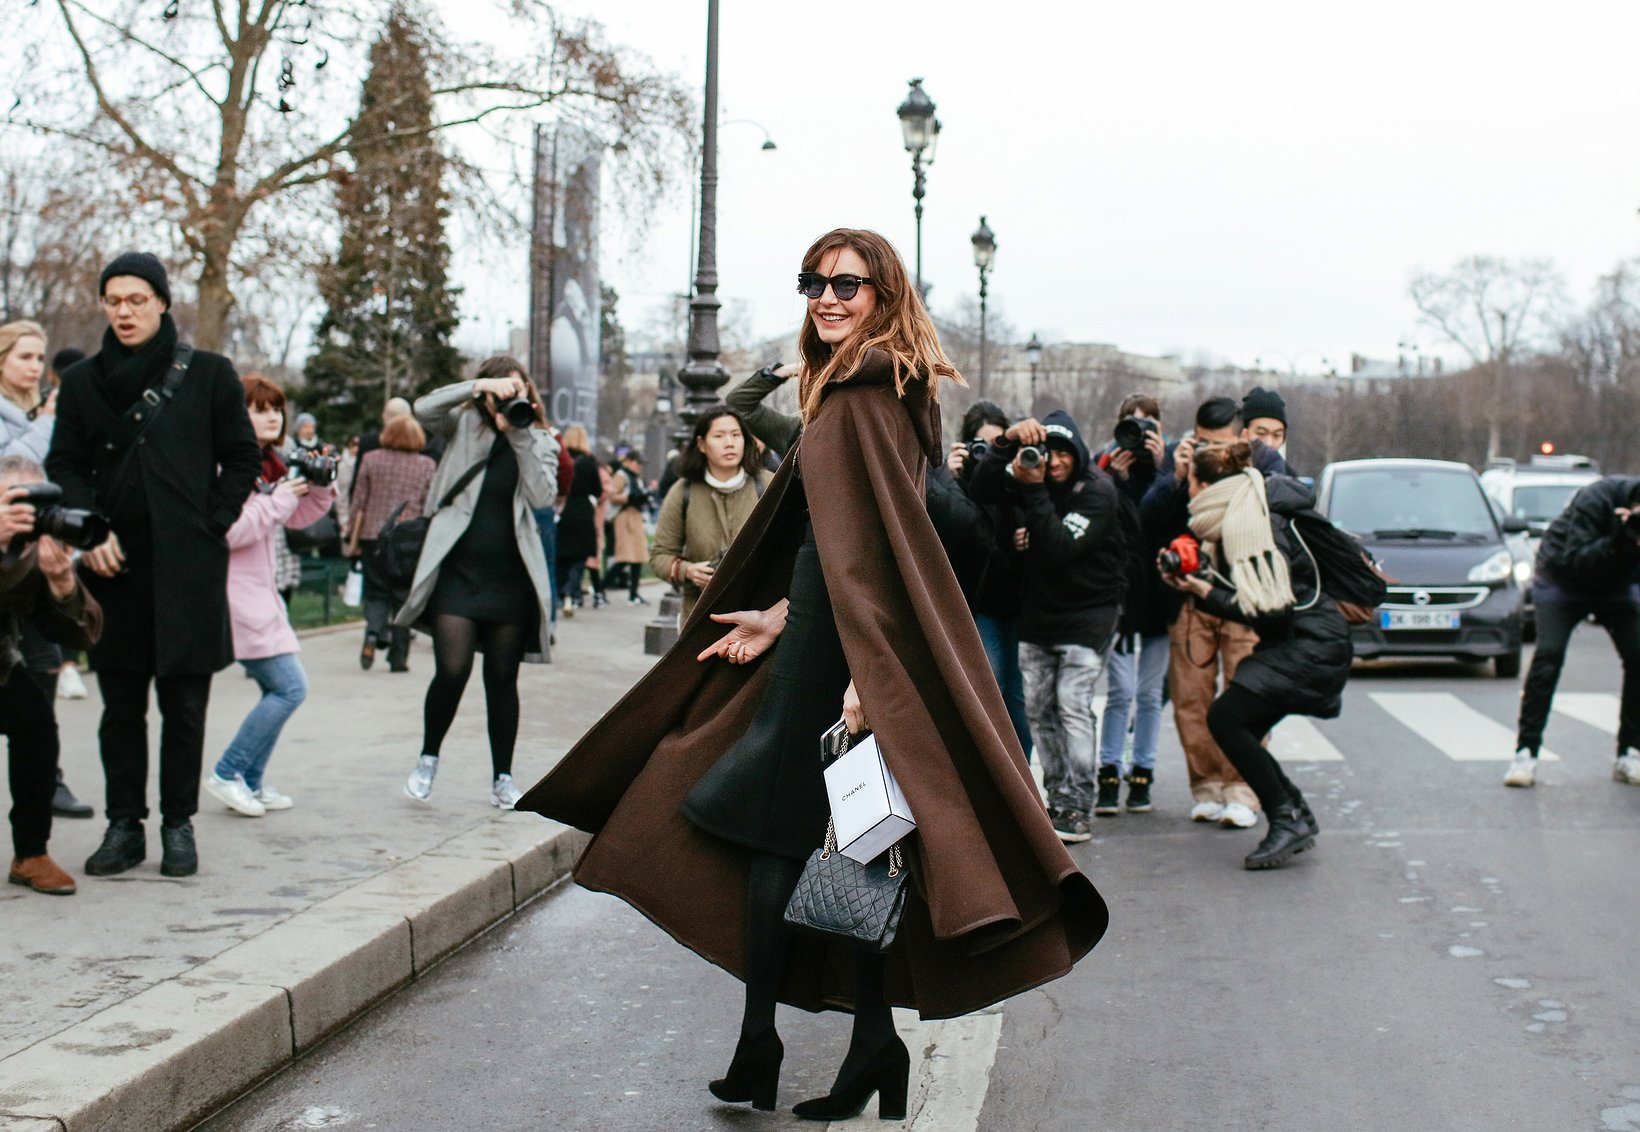 fav-looks-from-paris-fashionwonderer (57)